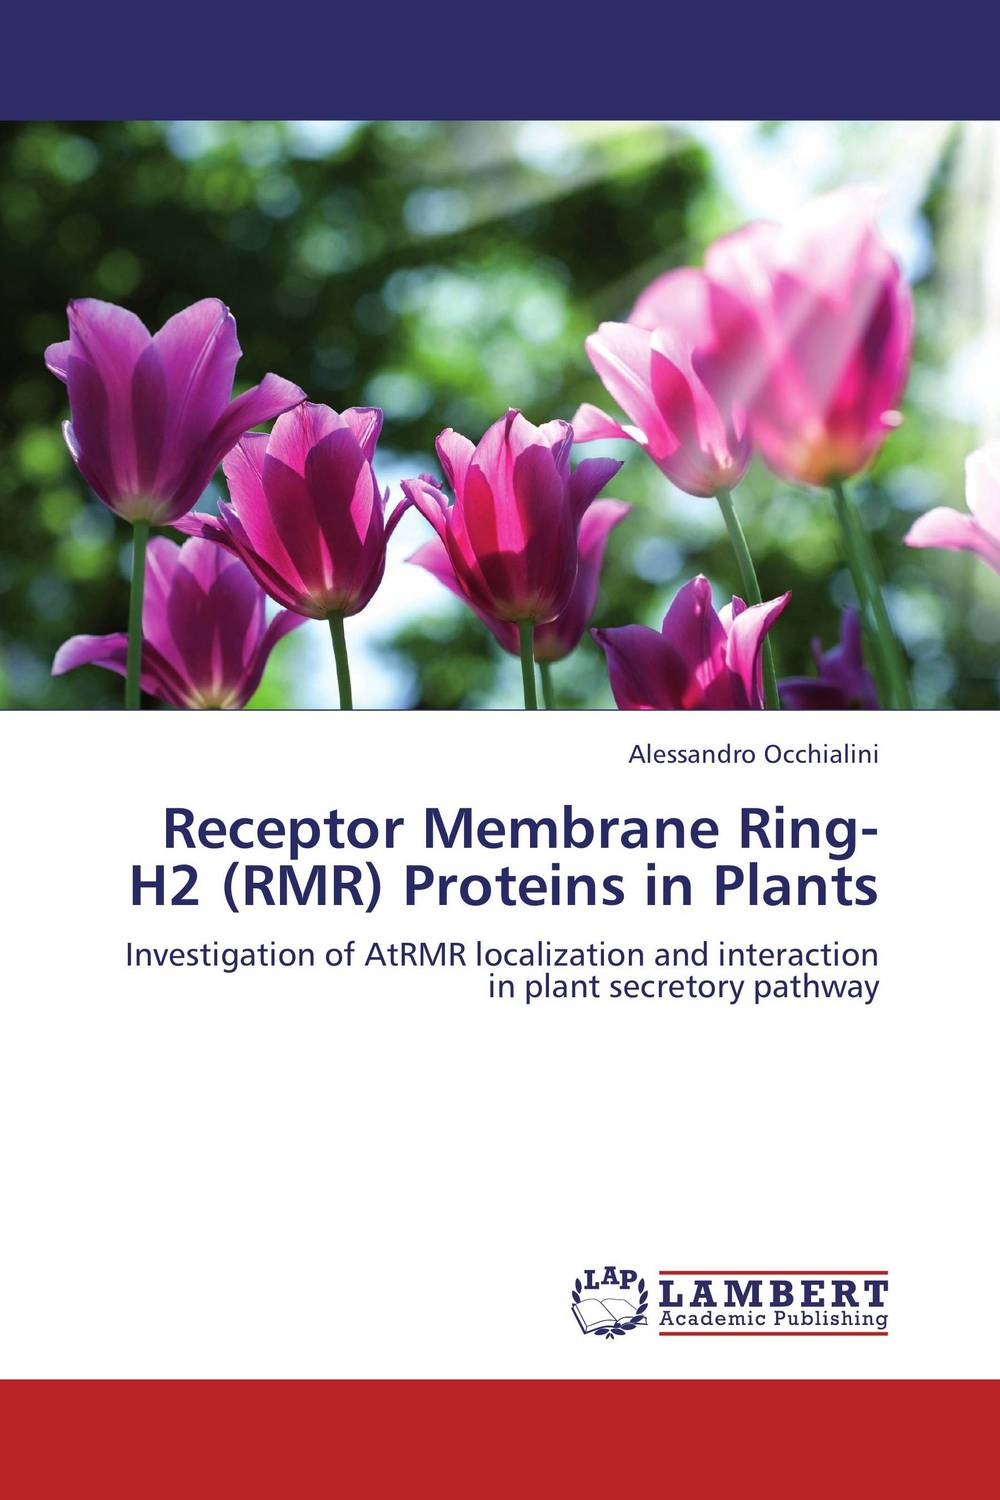 Receptor Membrane Ring-H2 (RMR) Proteins in Plants receptor membrane ring h2 rmr proteins in plants